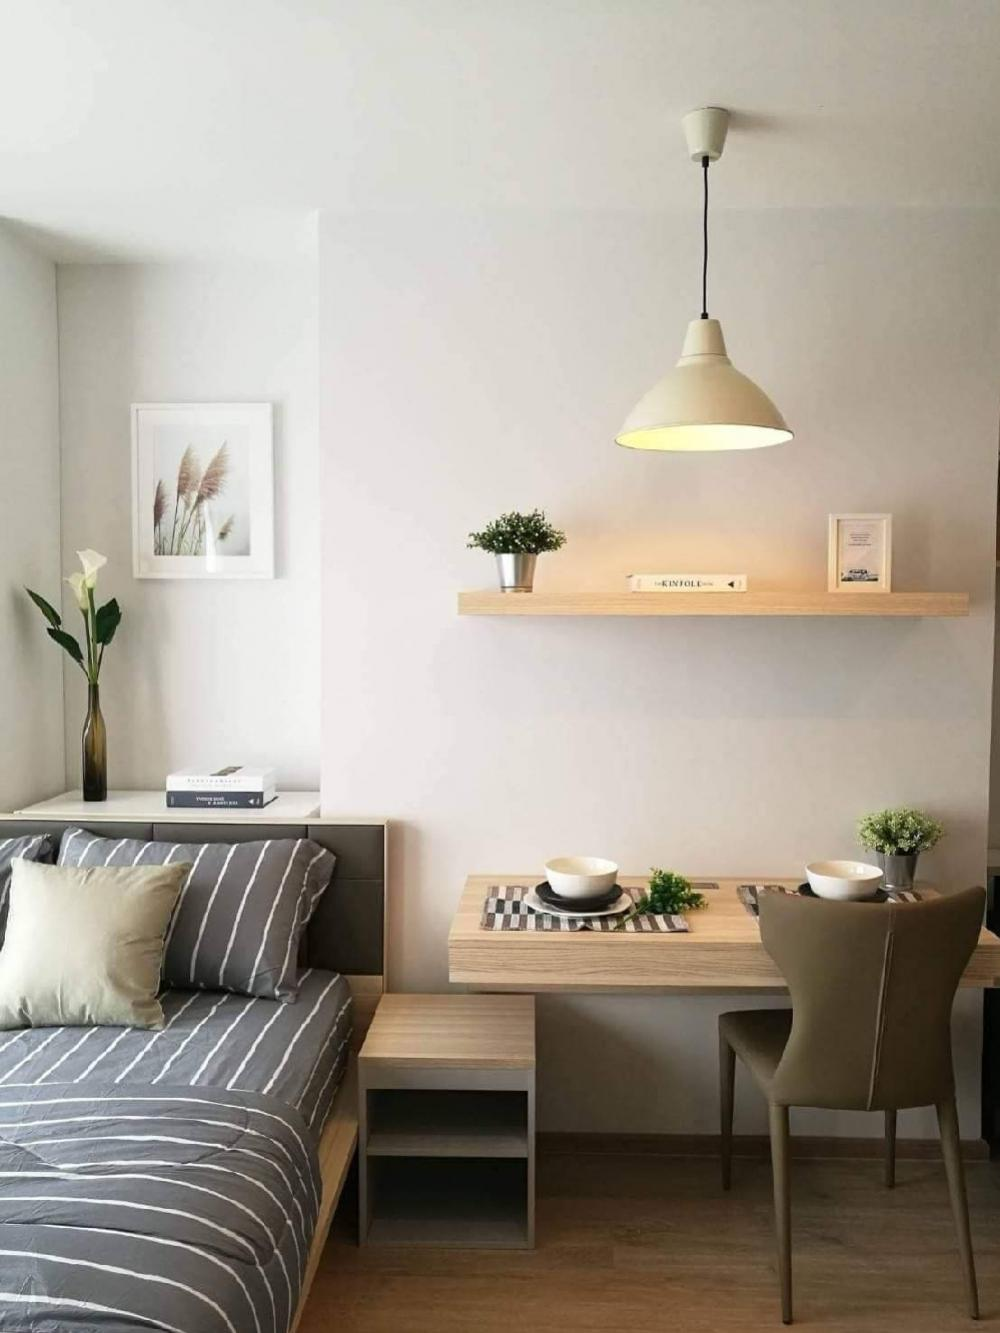 For RentCondoBangna, Lasalle, Bearing : TG8-0187 Urgent for rent, IDEO O2 Condo, Bangna, near BTS Bangna, only 350 meters Beautiful room ready. Odds are negotiable !!